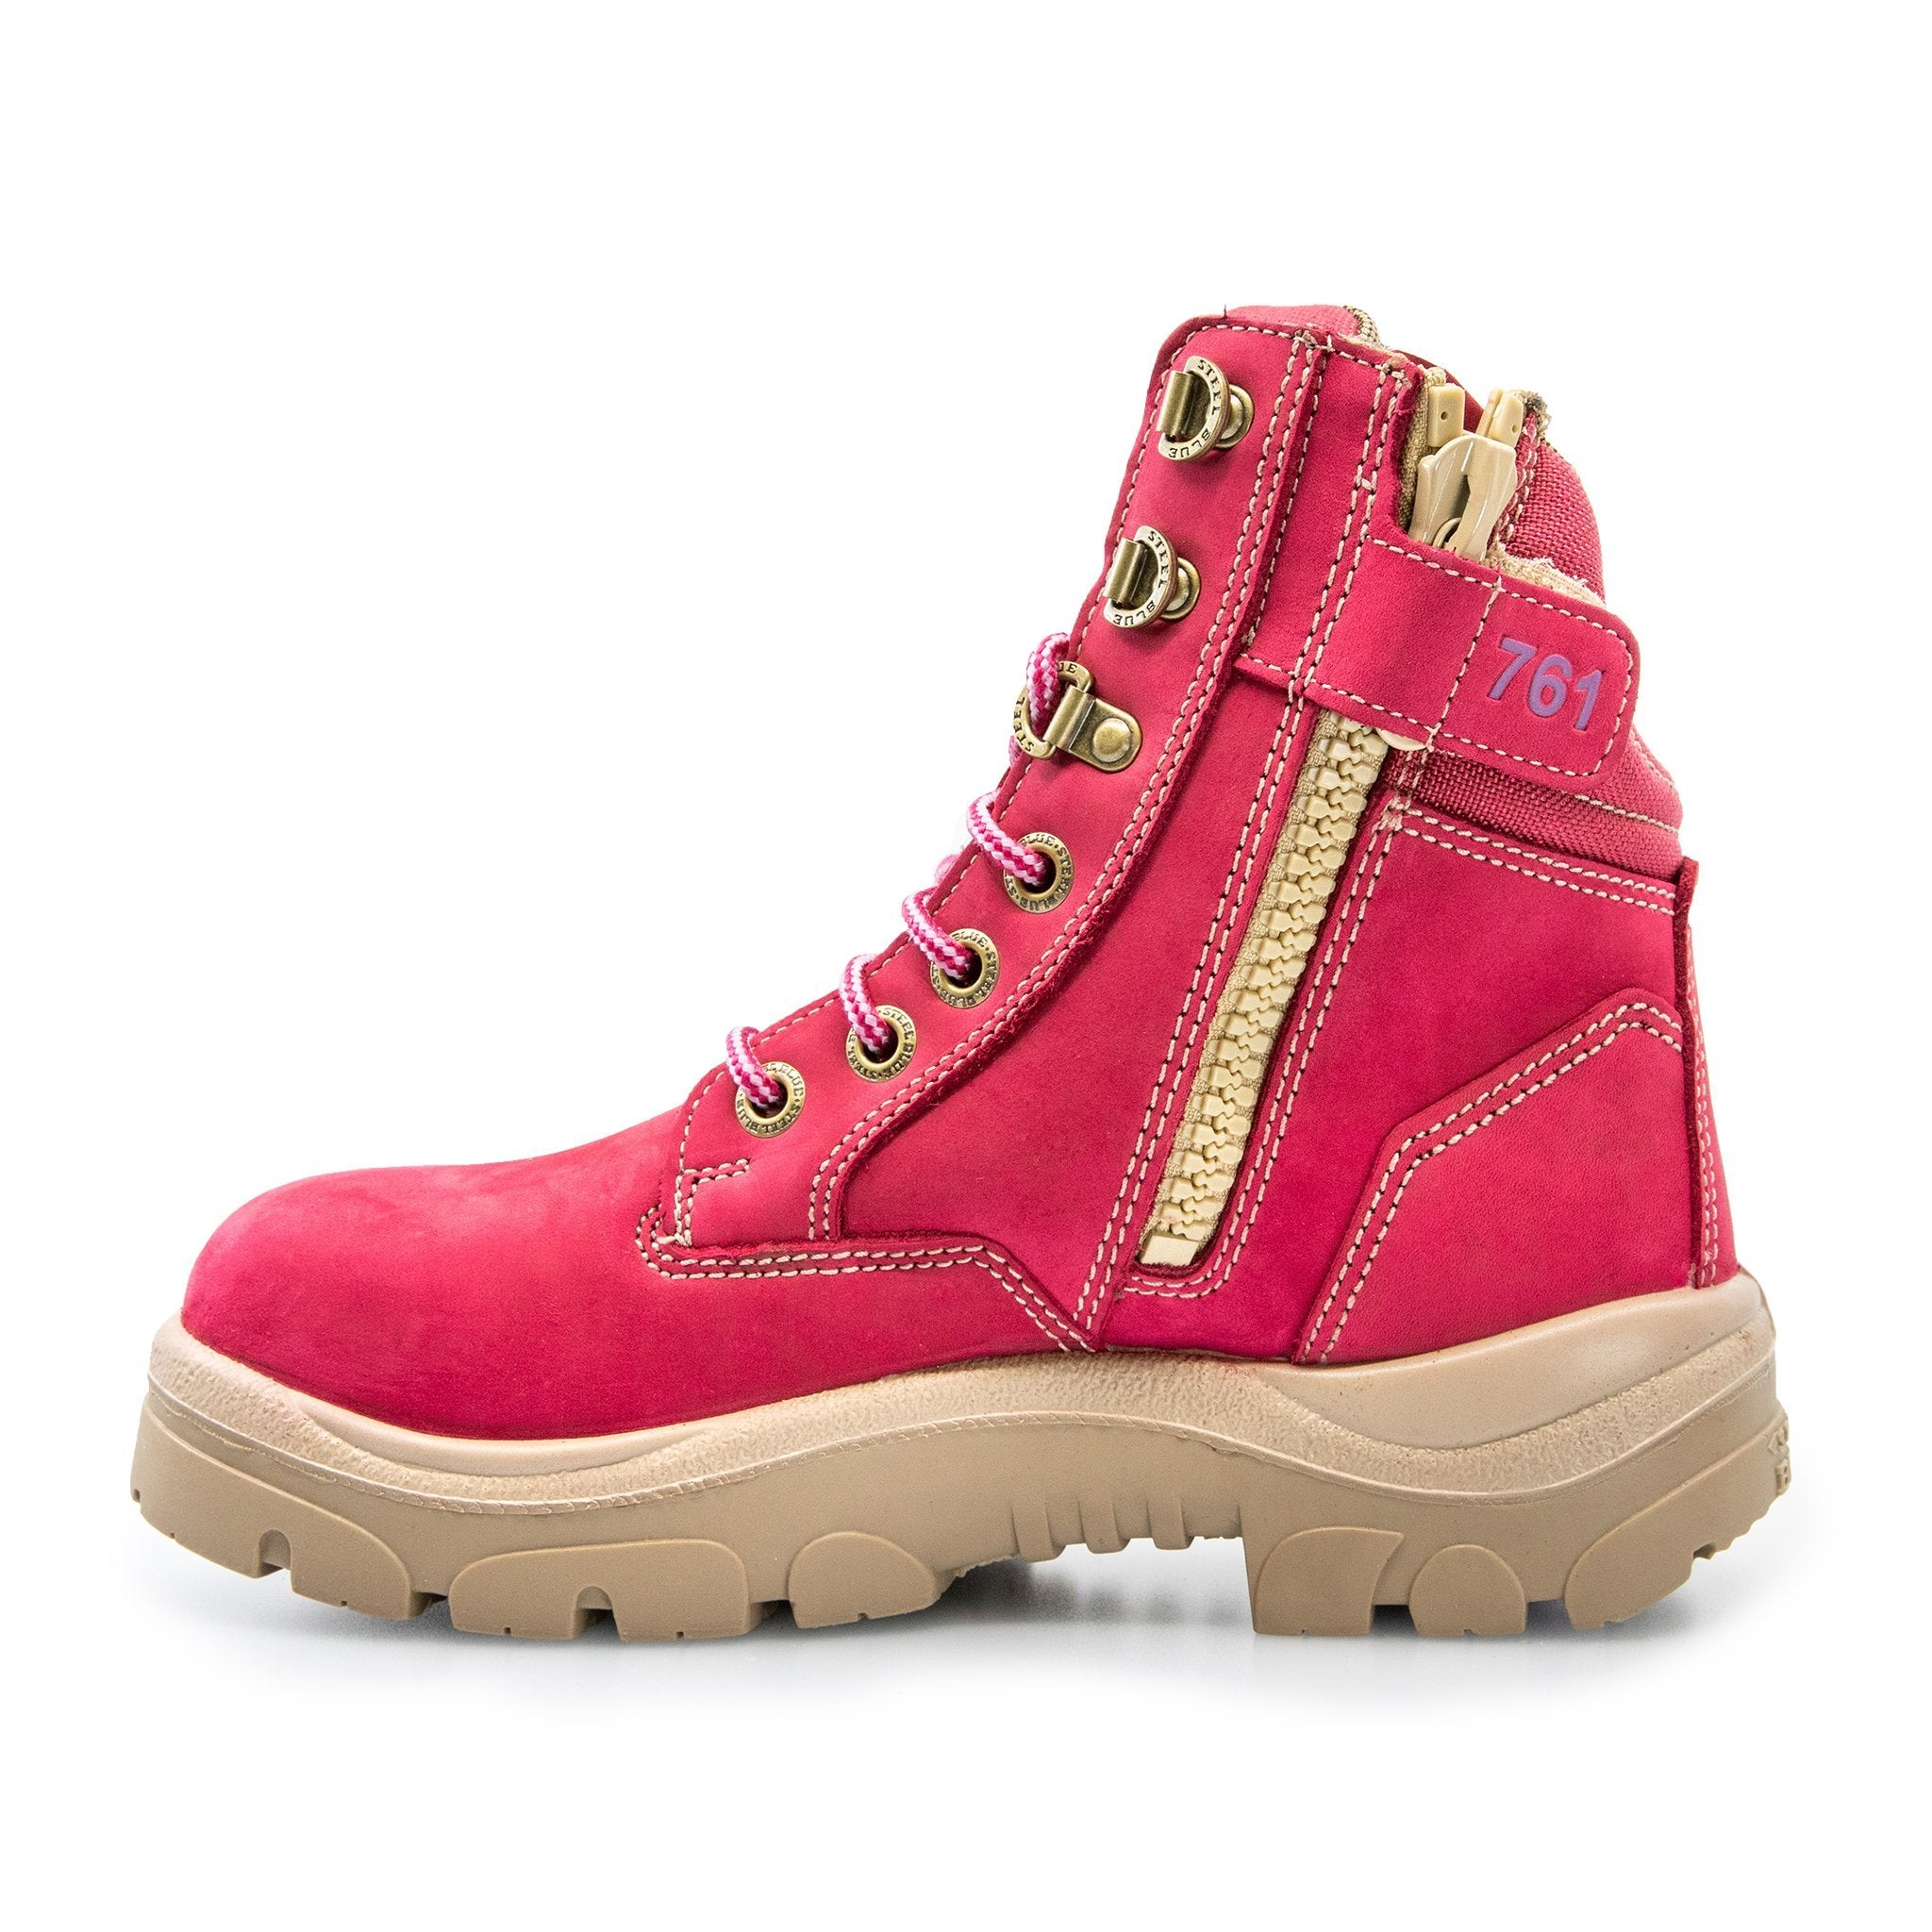 SOUTHERN CROSS ZIP LADIES' PINK BOOTS